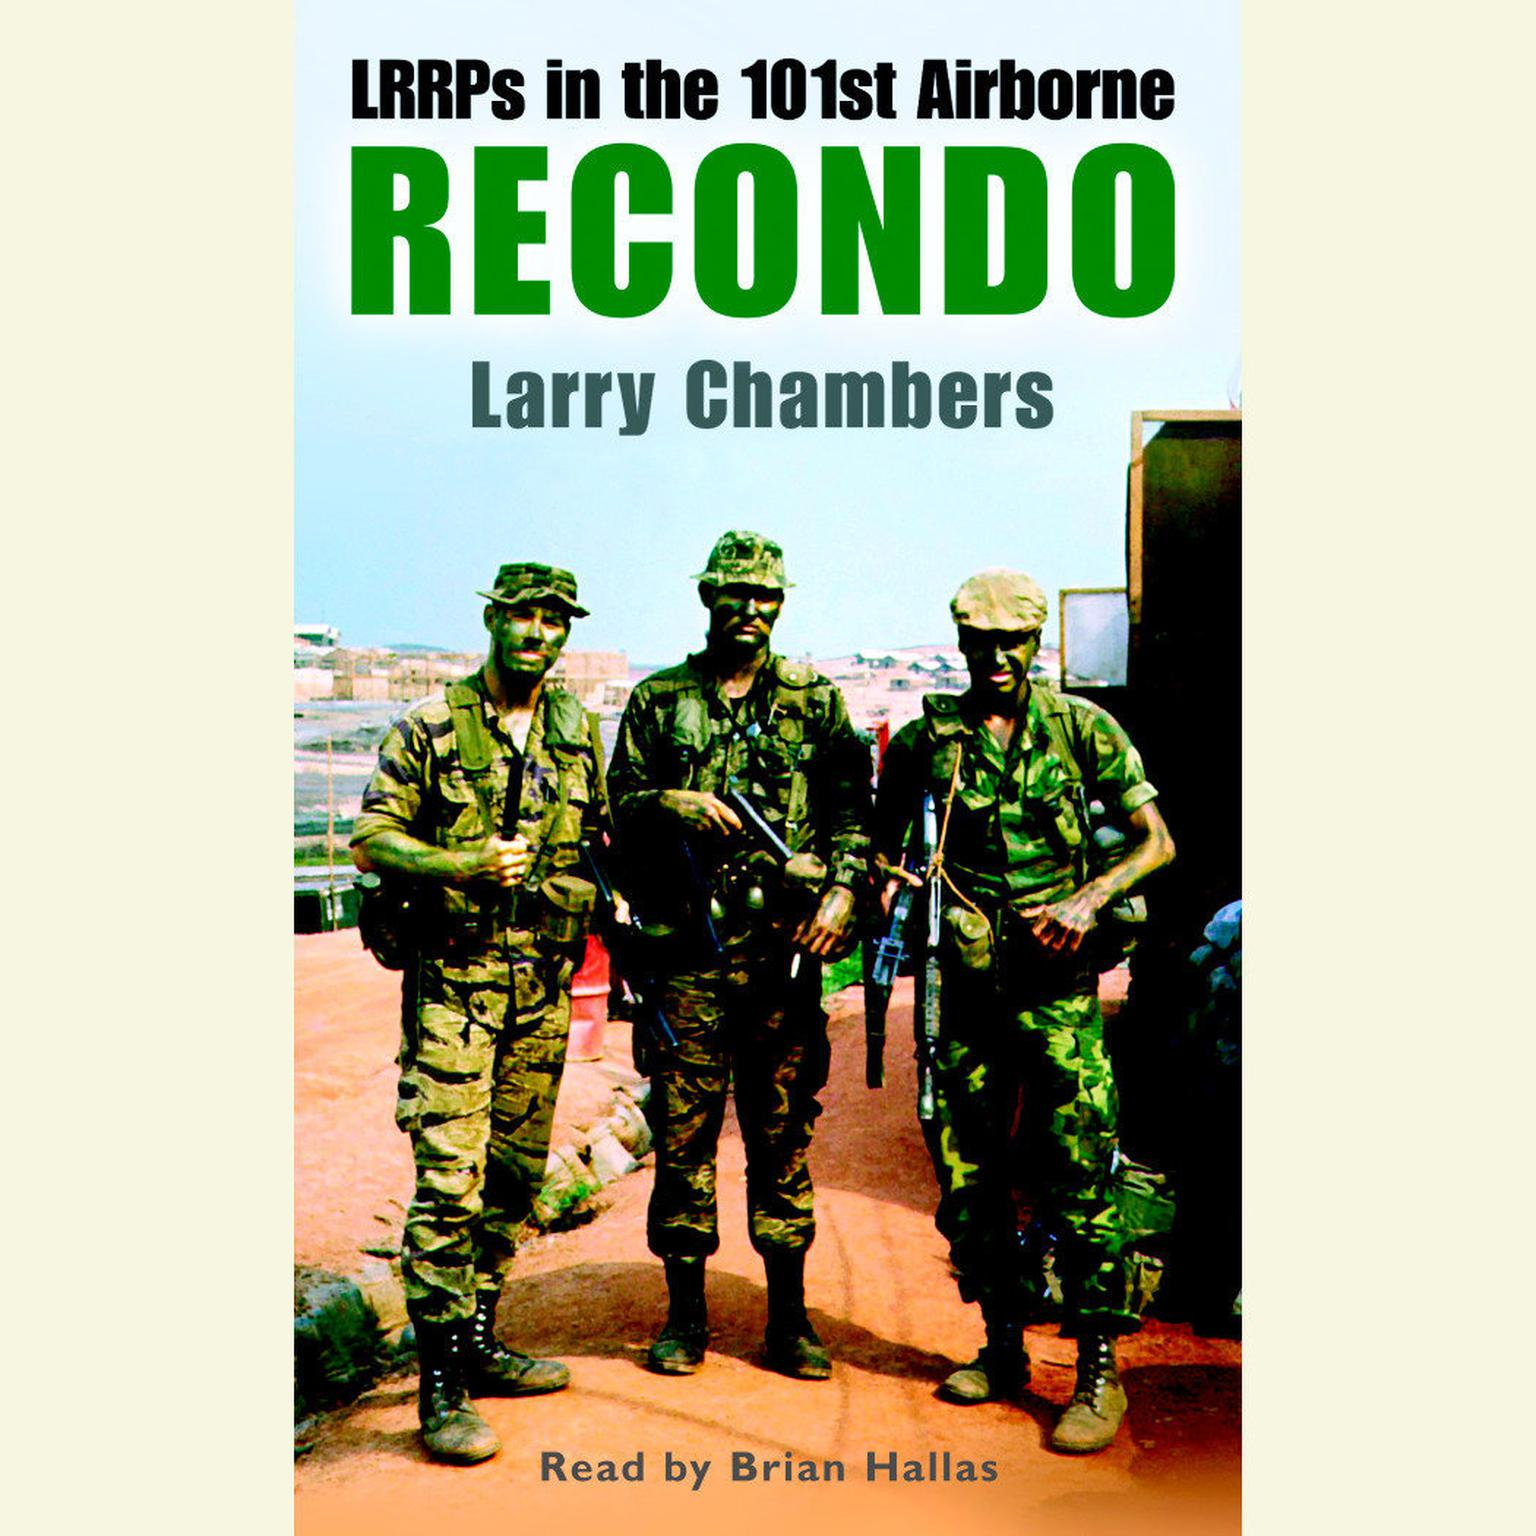 Printable Recondo: LRRPs in the 101st Airborne Audiobook Cover Art